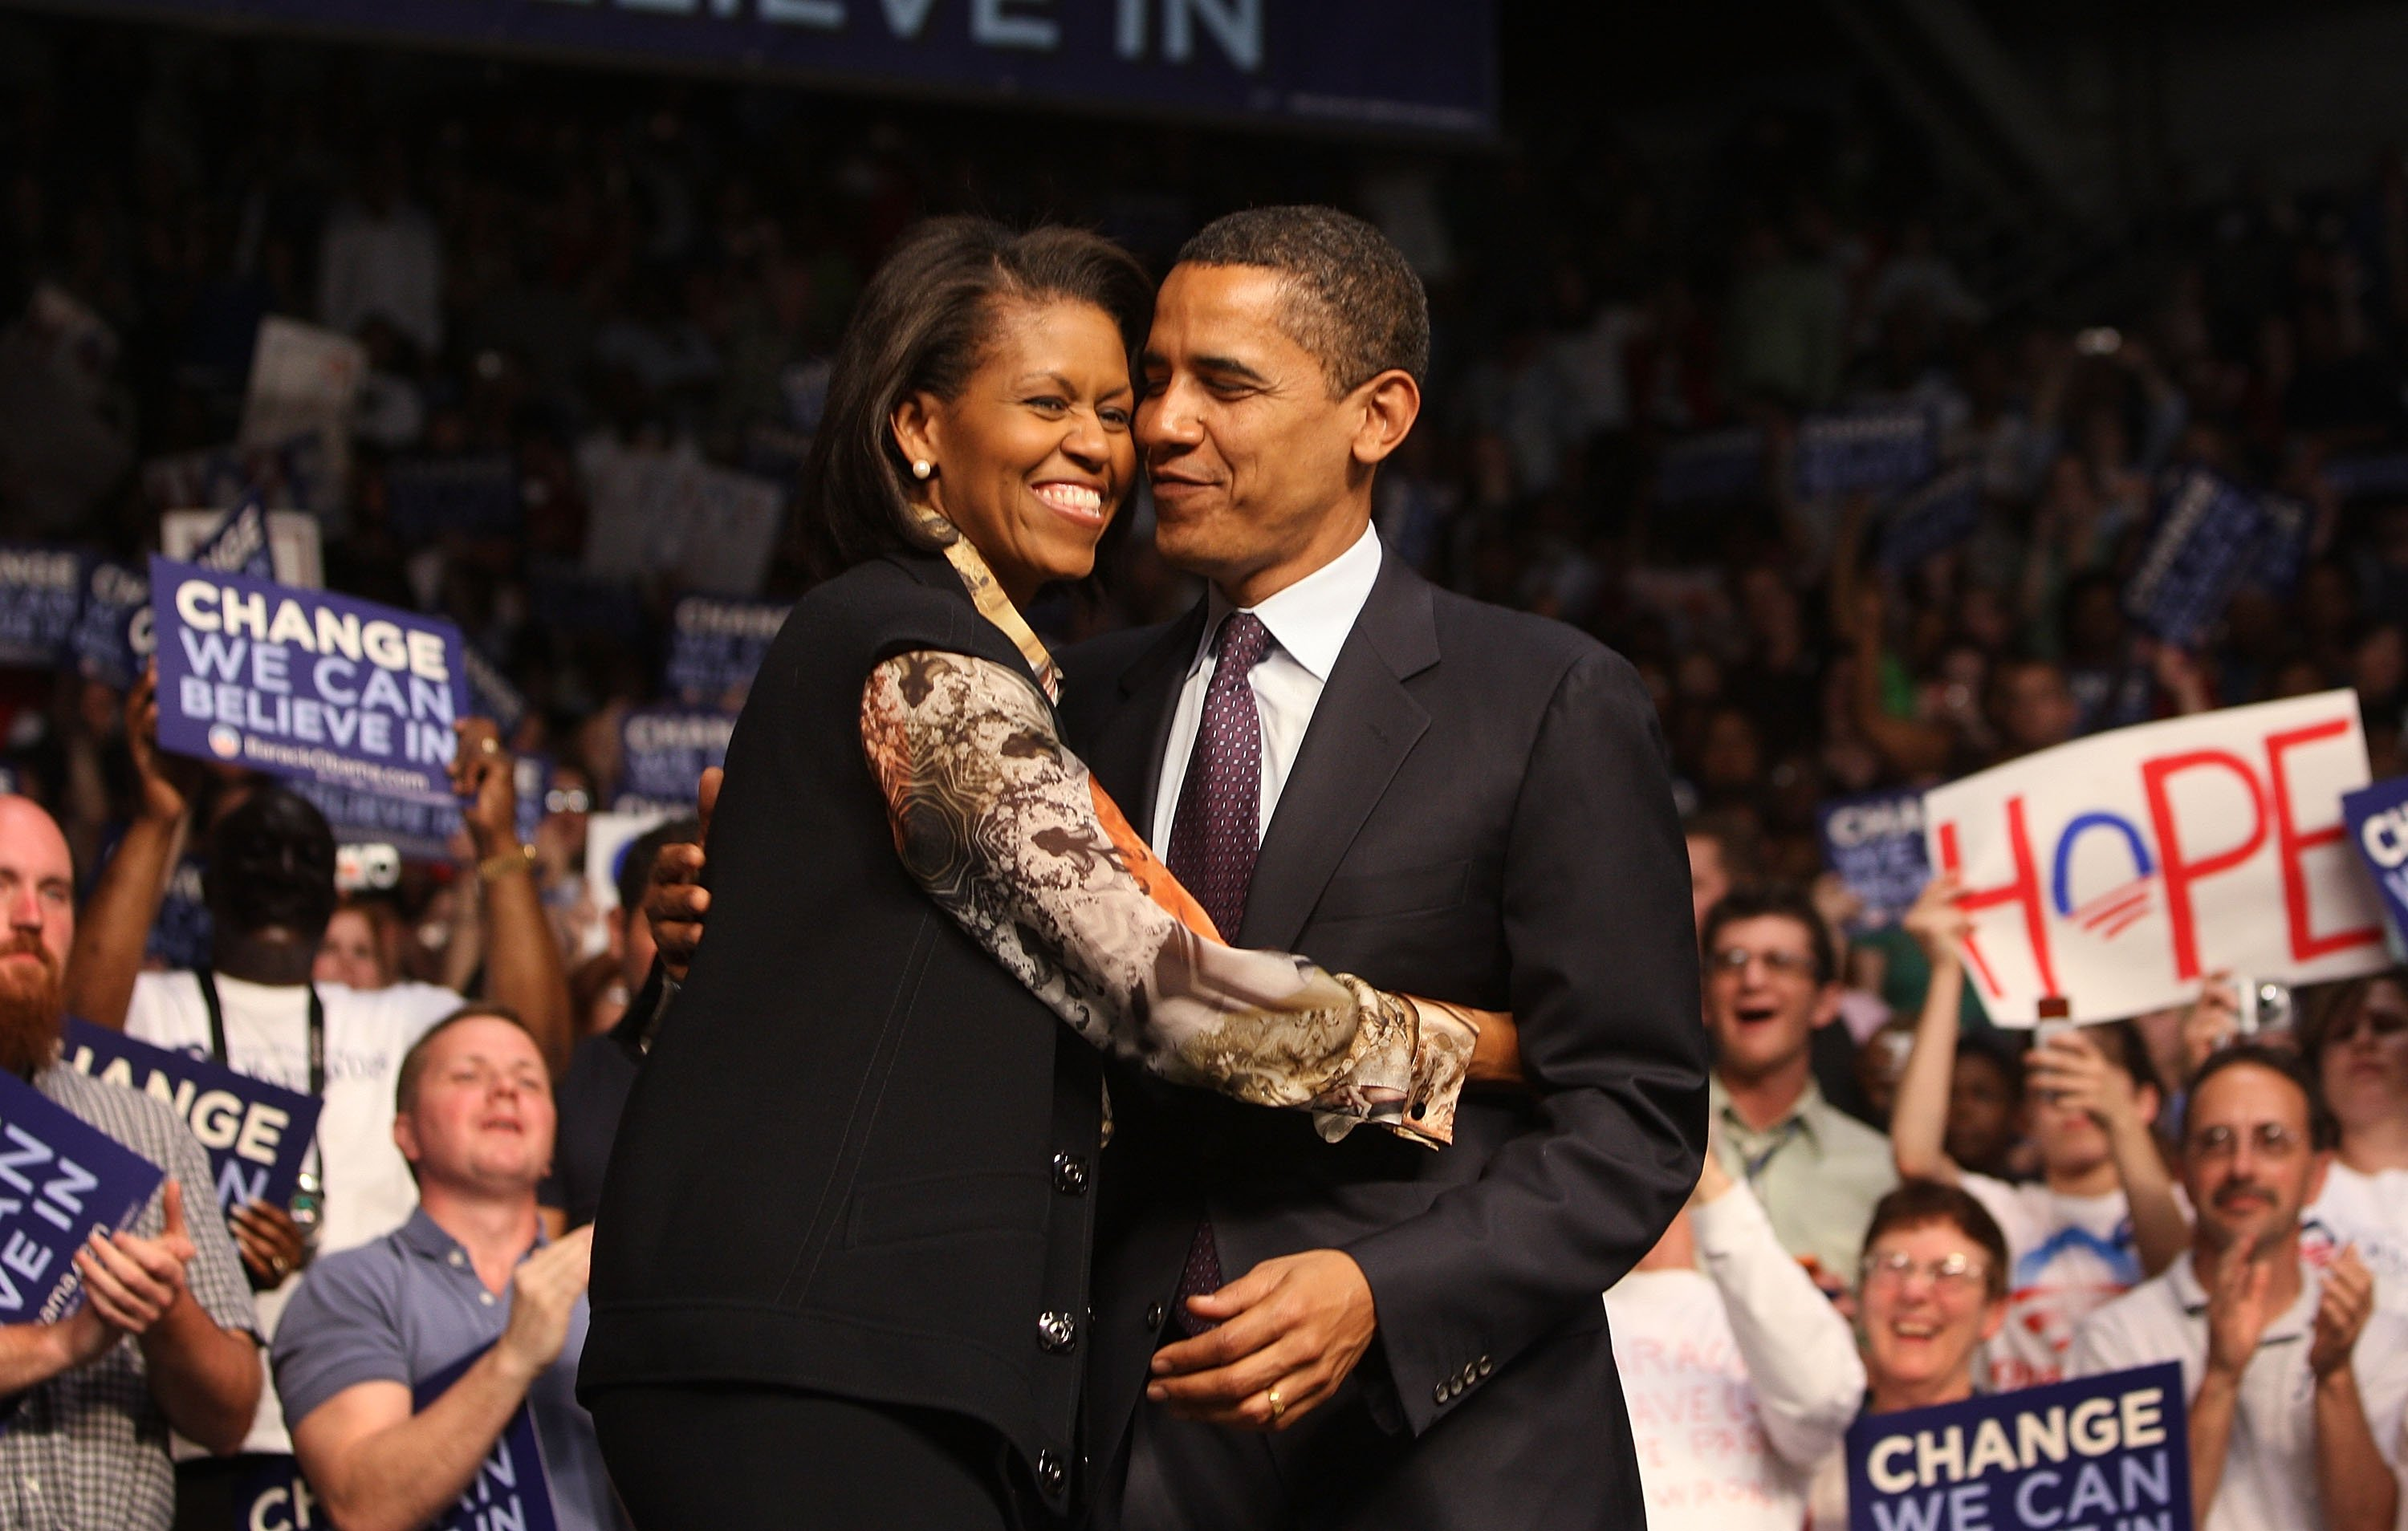 Michelle and Barack Obama on April 22, 2008 in Indiana | Photo: Getty Images